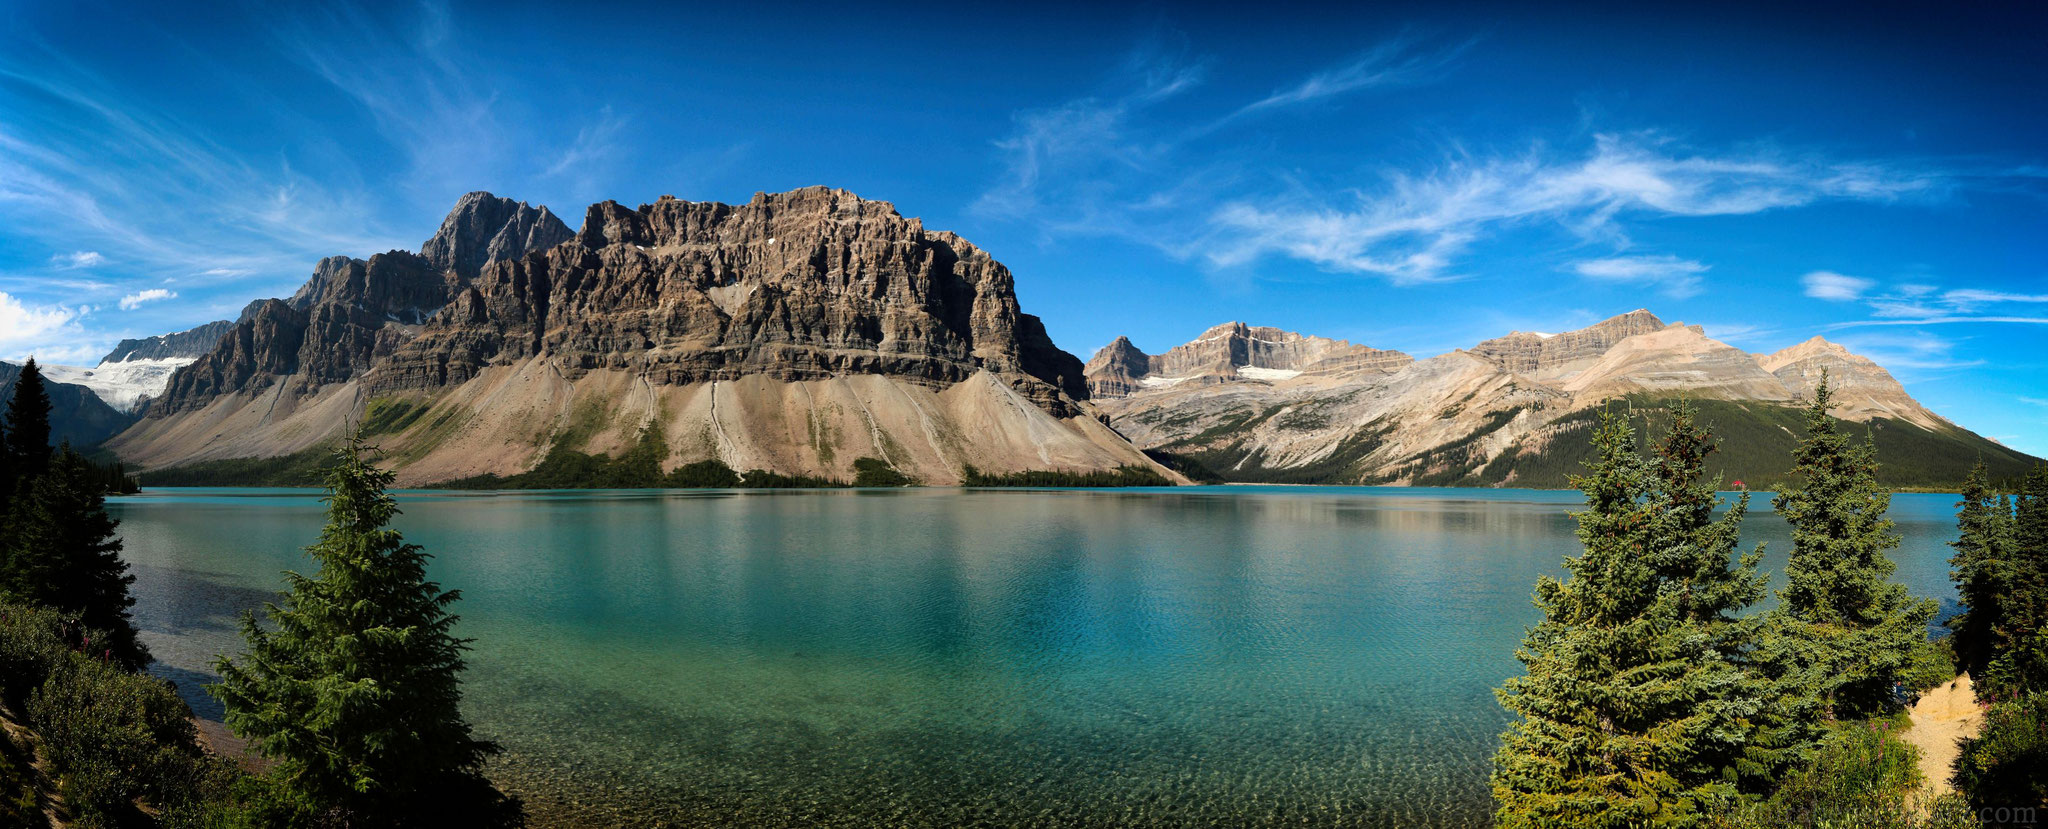 Der Bow Lake